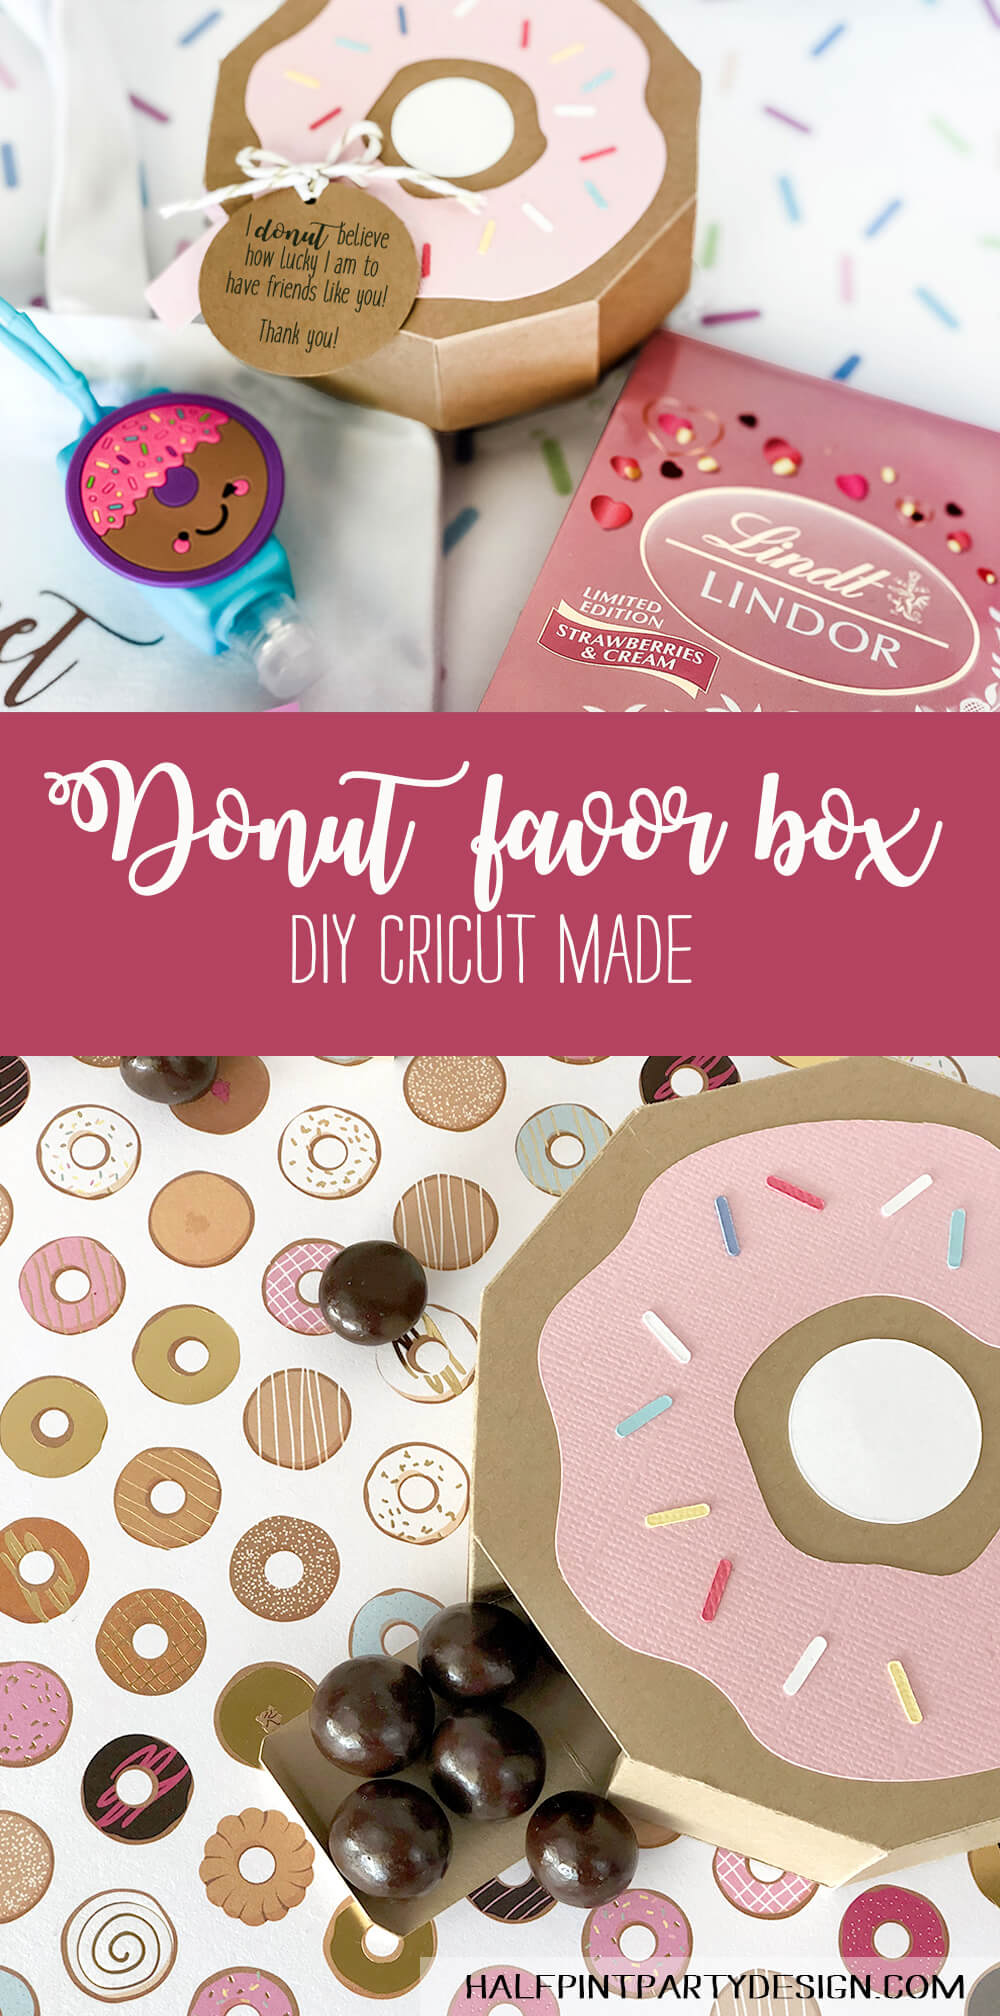 Donut party favor box for a sweet treat